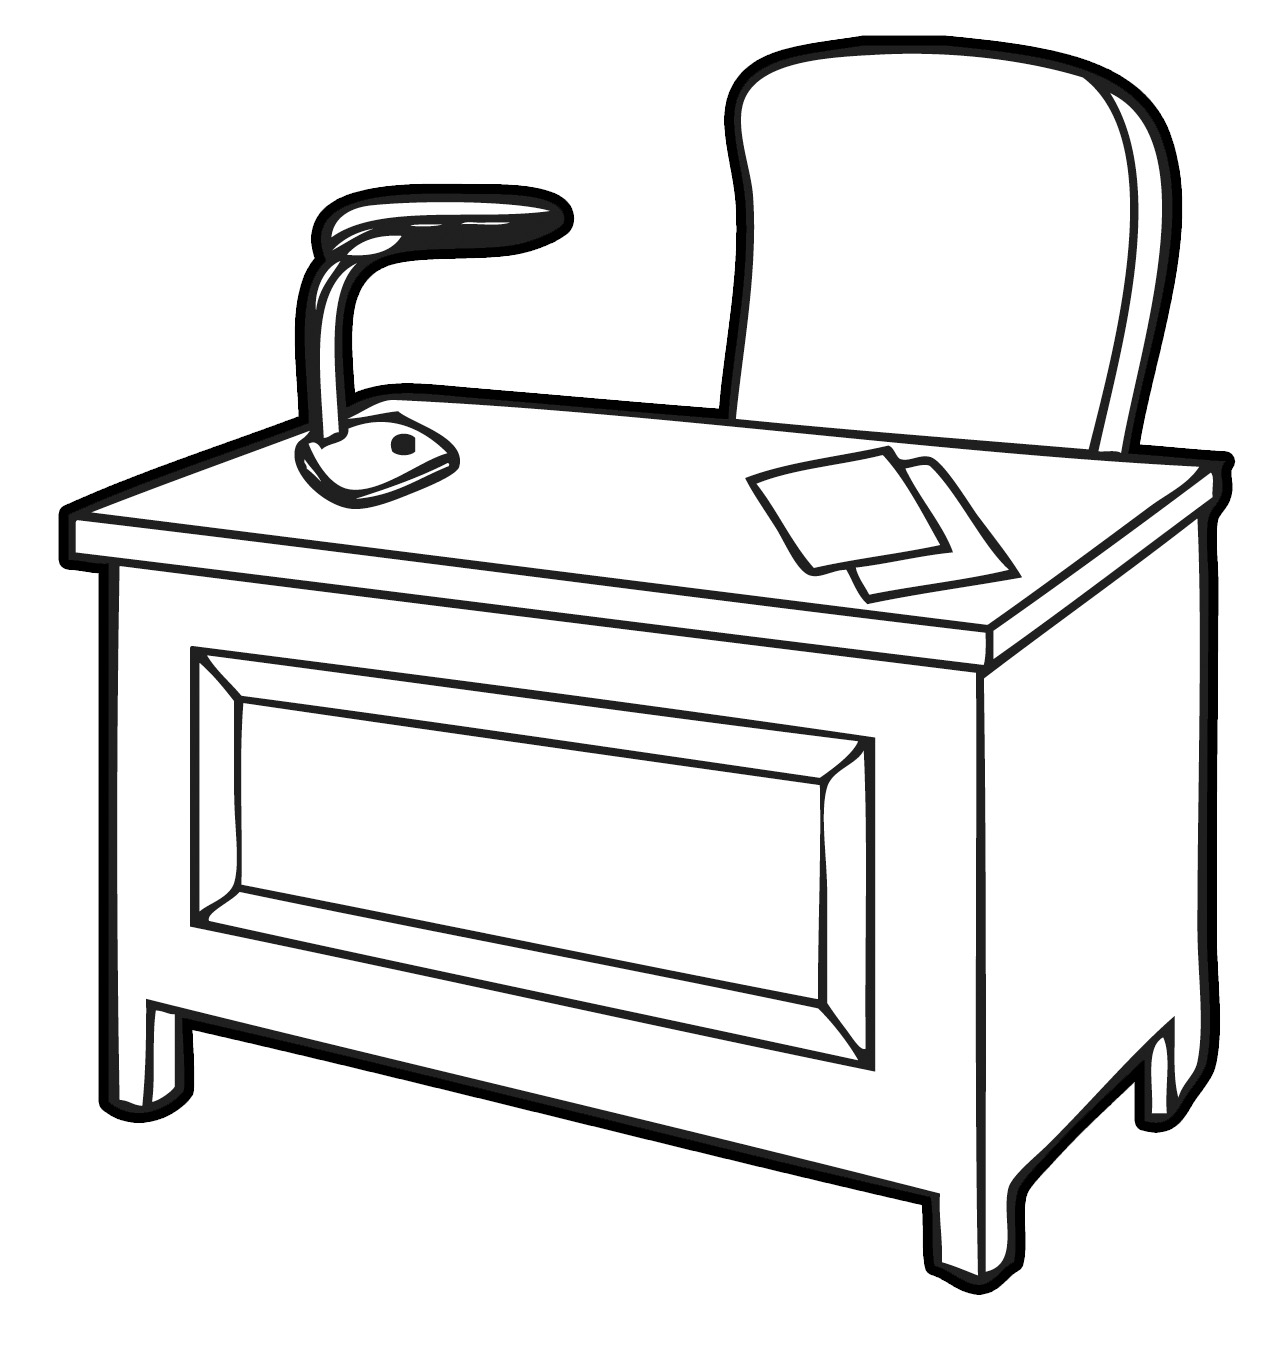 Free Office Furniture Cliparts, Download Free Clip Art, Free.